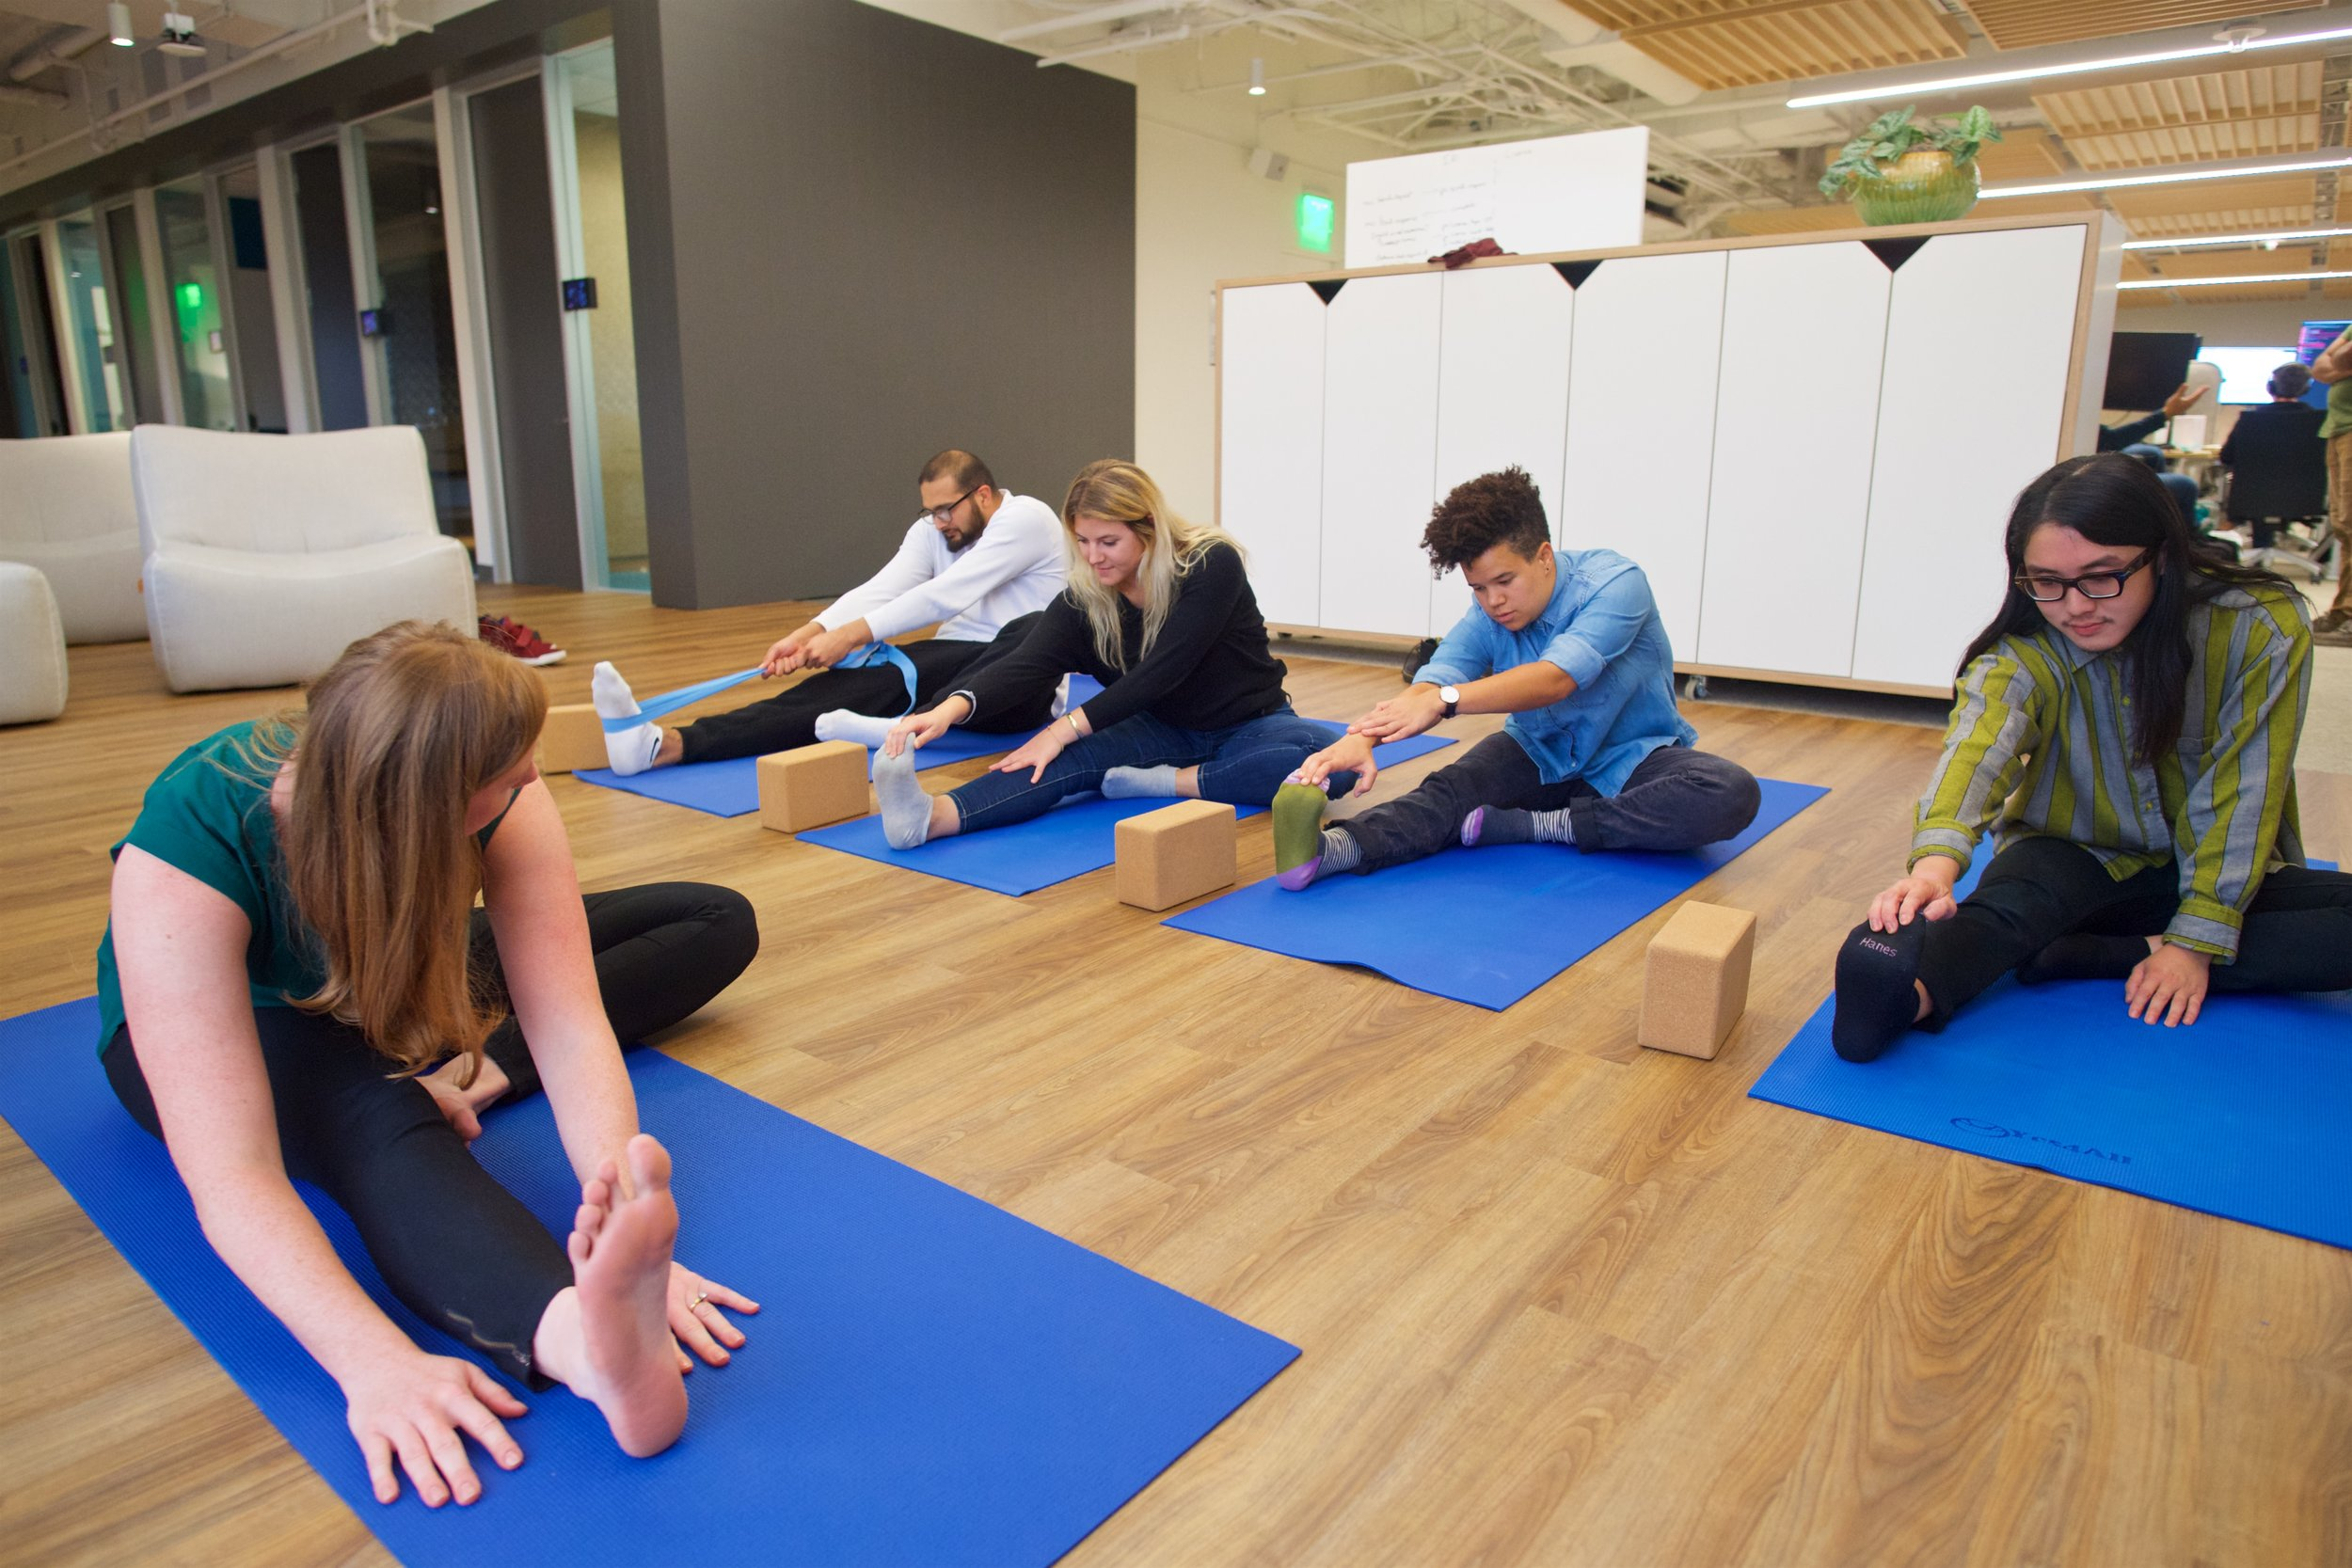 Yoga   Guided instruction in breathing, movement and meditation by certified teacher.